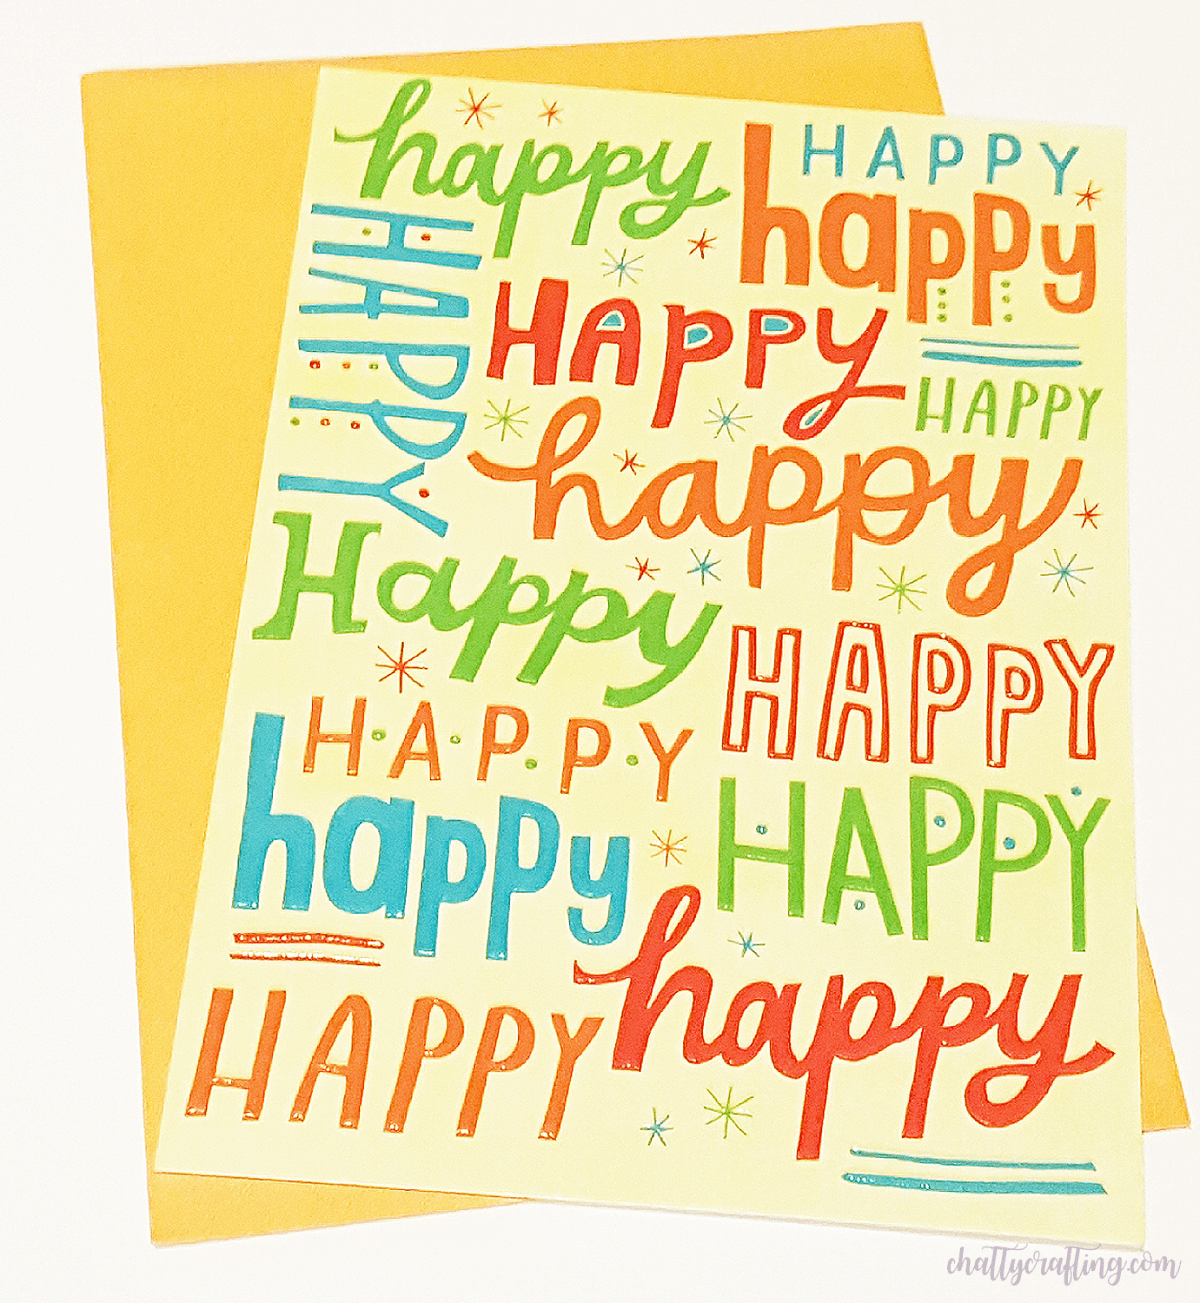 You can find endless FREE fonts here to download, and get started with your paper crafts right now! Just have fun with it! Here's a couple of super fun greeting cards to get some font inspiration!